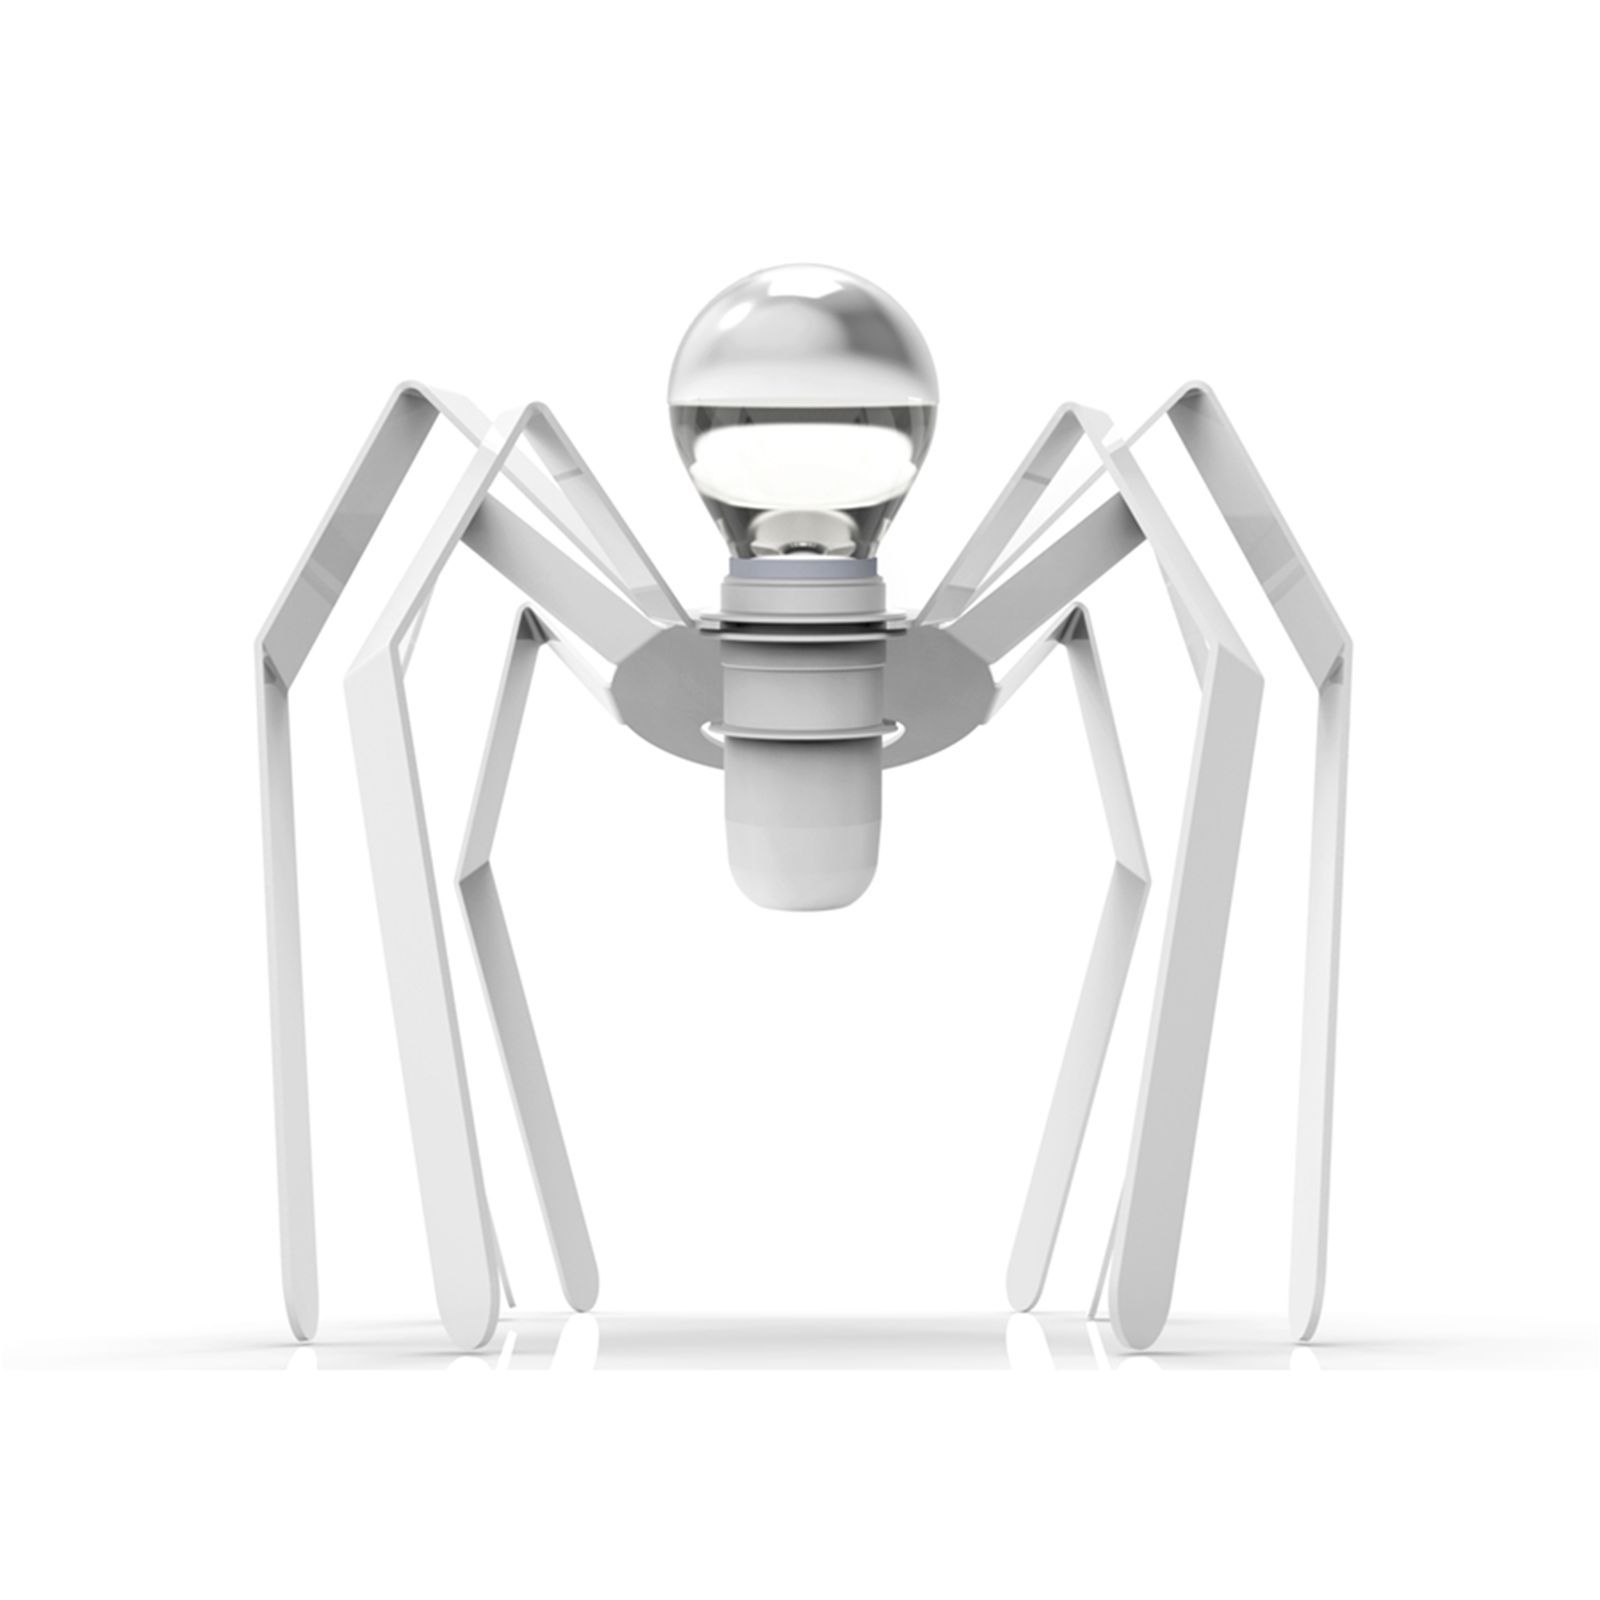 thomas de lussac spiderlight lampe design blanche. Black Bedroom Furniture Sets. Home Design Ideas